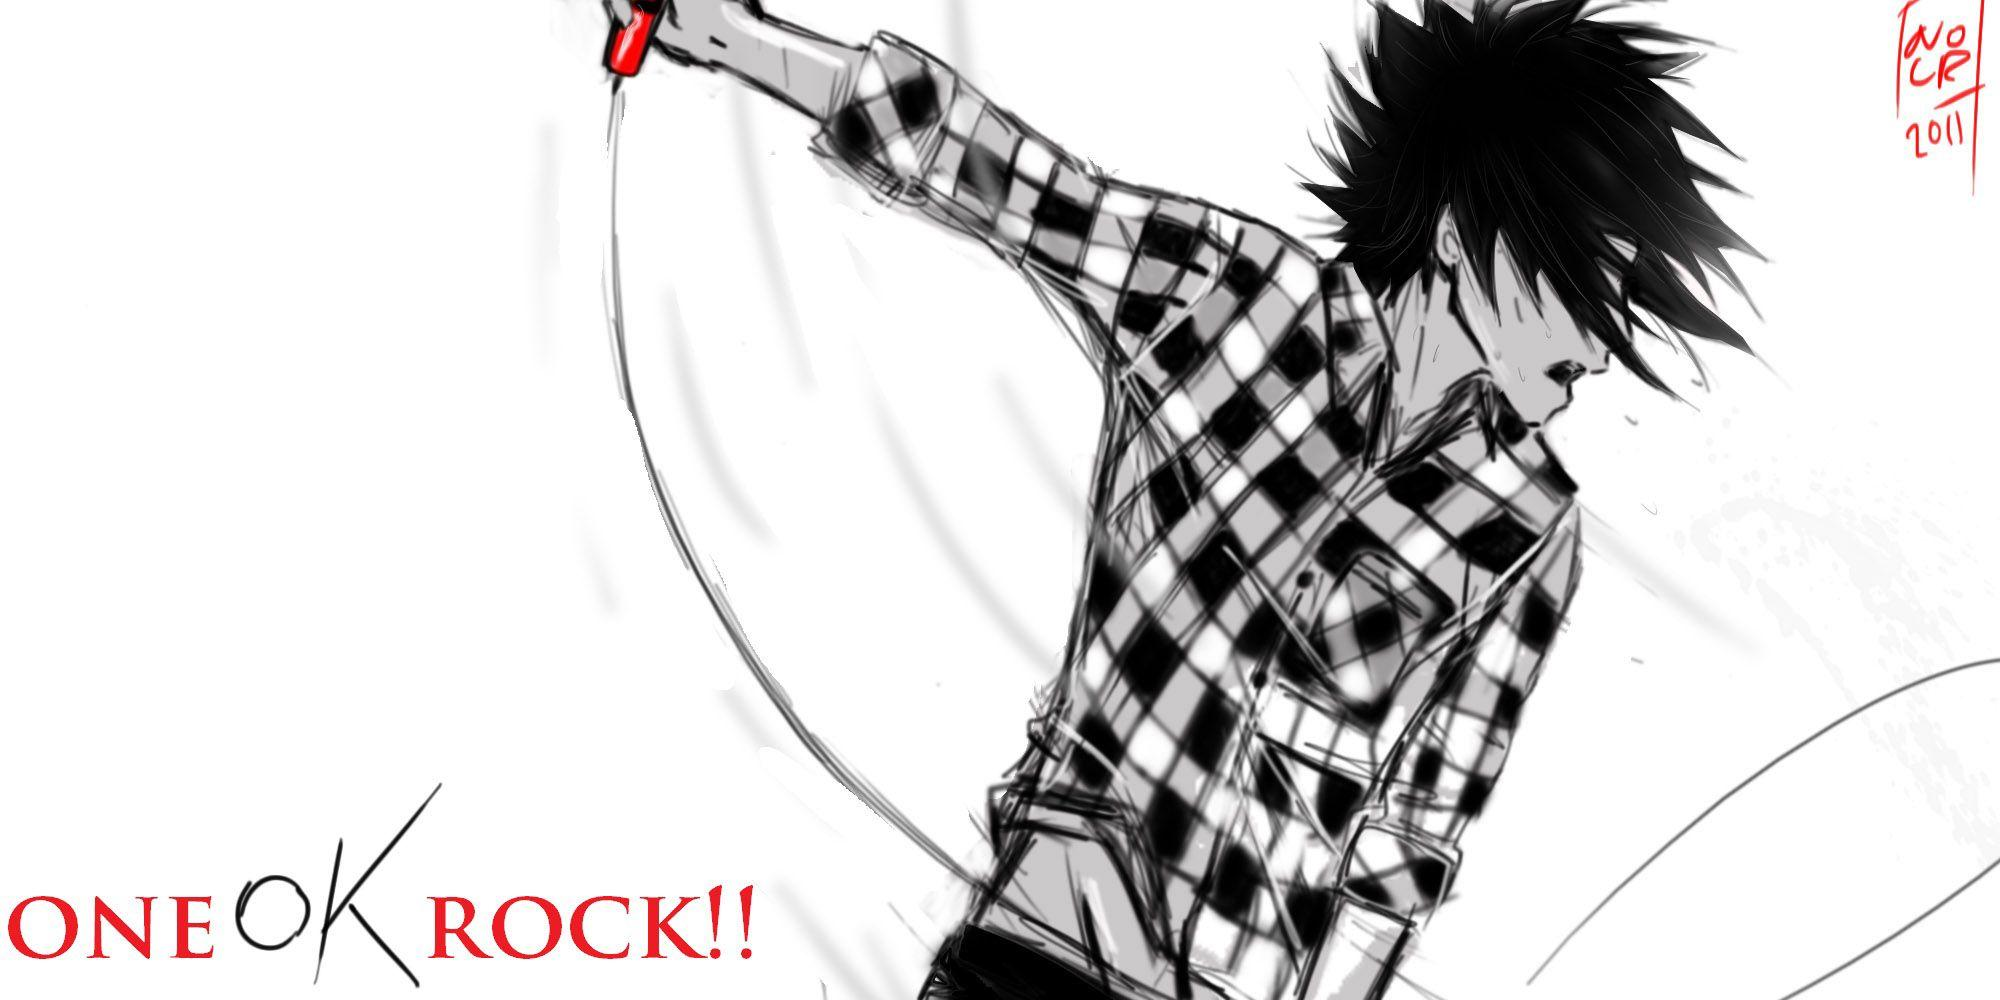 One Ok Rock wallpaper1 by bogyo5418 on DeviantArt